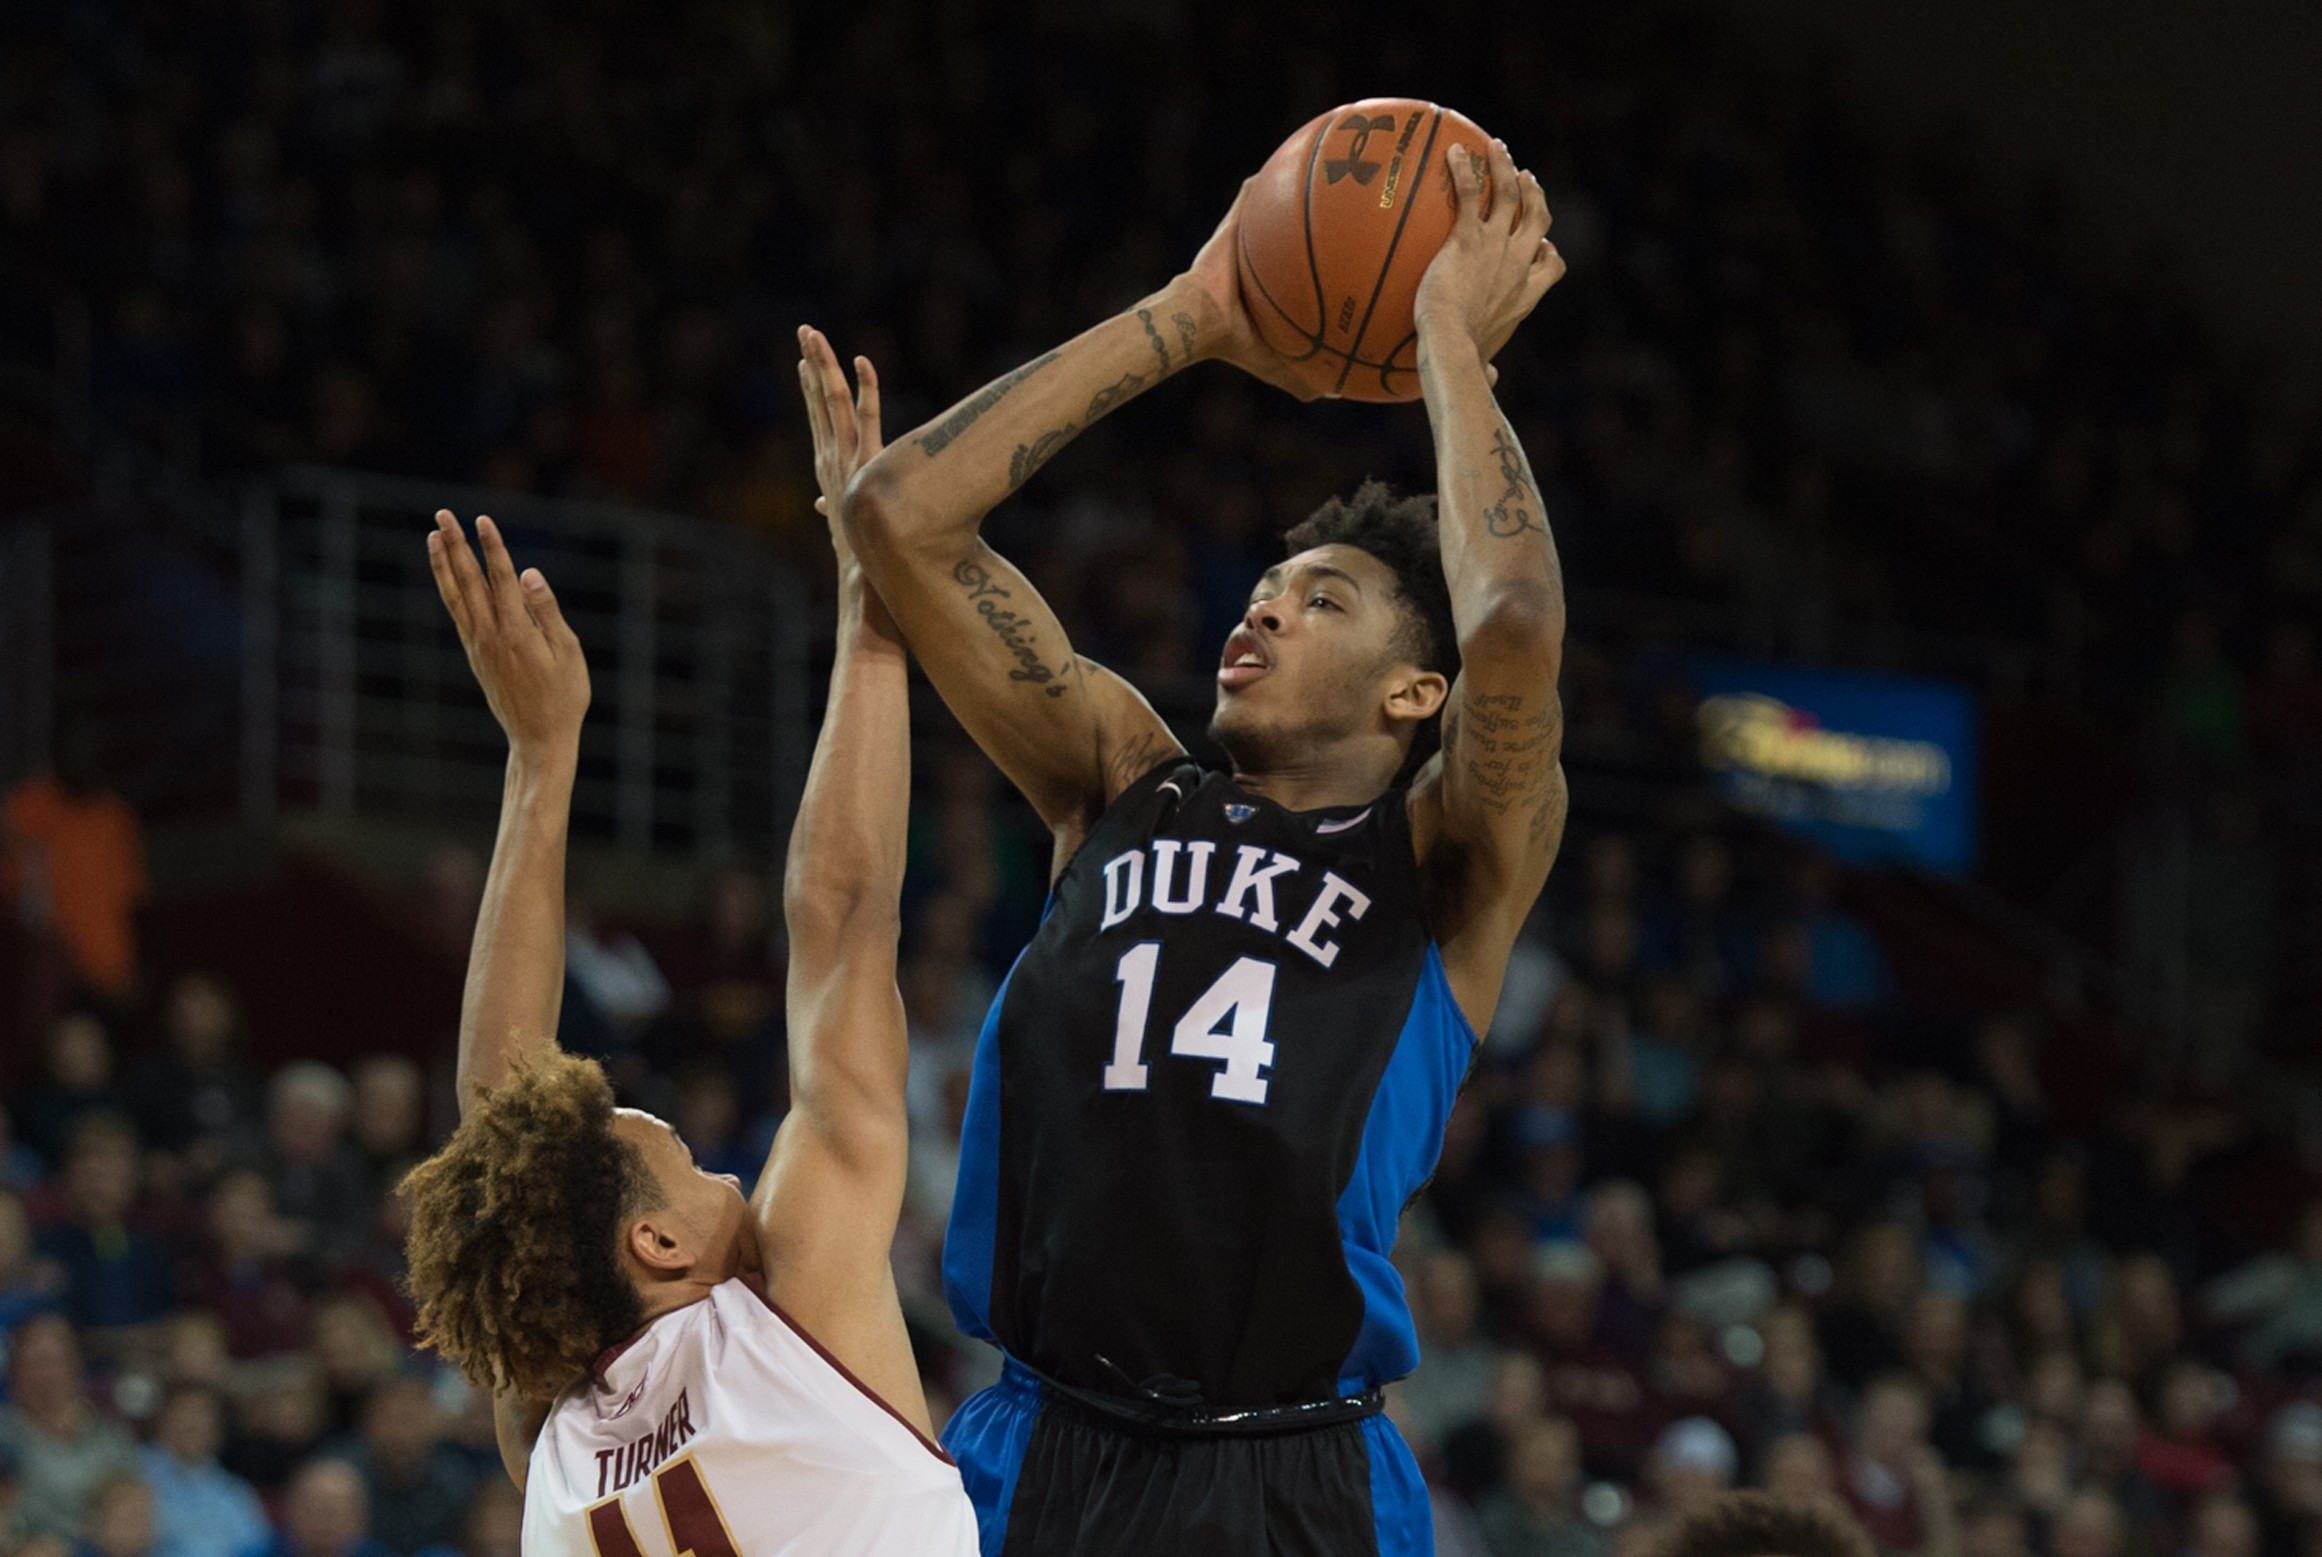 Duke guard Brandon Ingram (14) shoots the ball over the reach of Boston College forward A.J. Turner (11) during the second half of an NCAA college basketball game Saturday, Jan. 2, 2016, in Boston. Duke beat Boston College 81-64. (AP Photo/Gretchen Ertl)